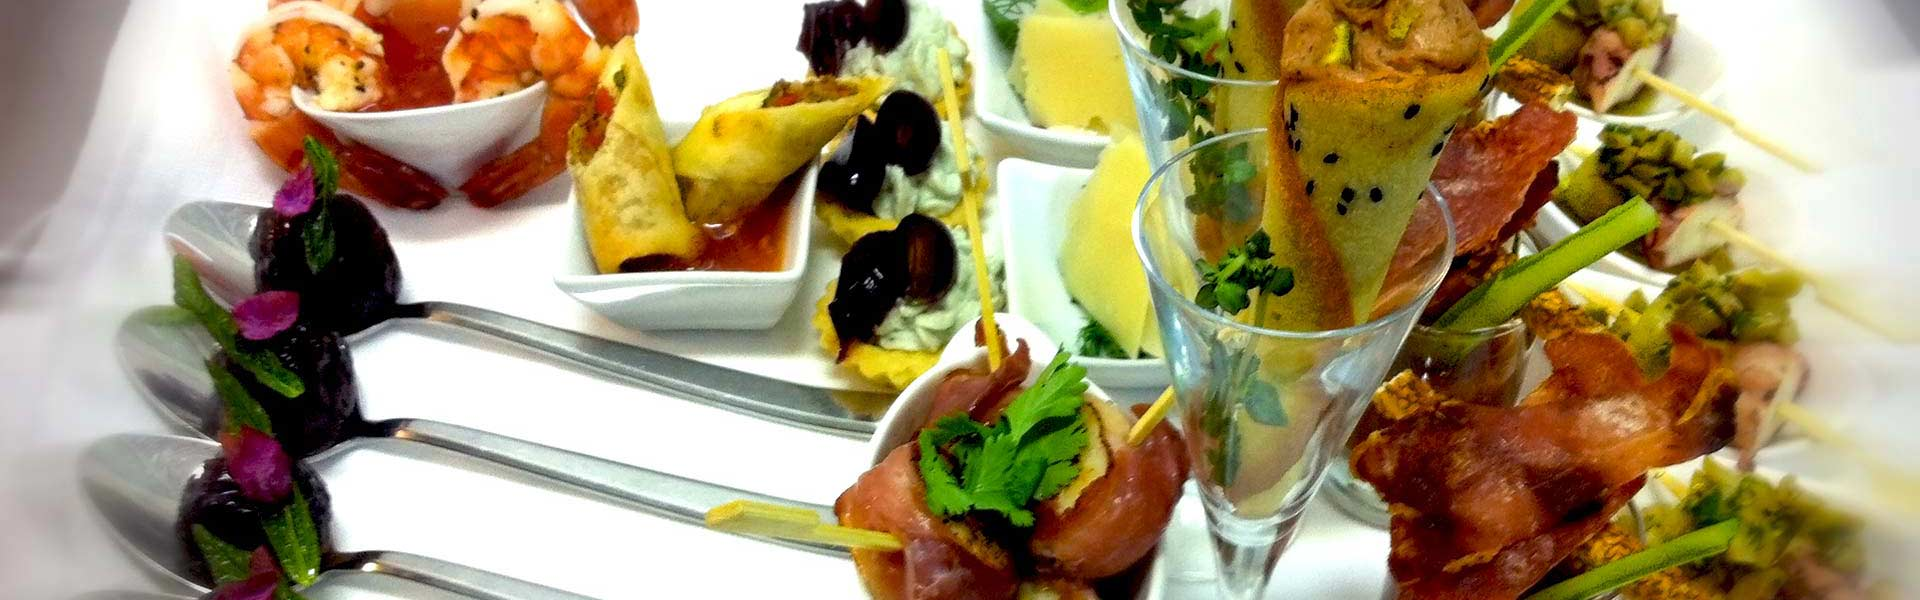 Catering French Restaurant Bakery